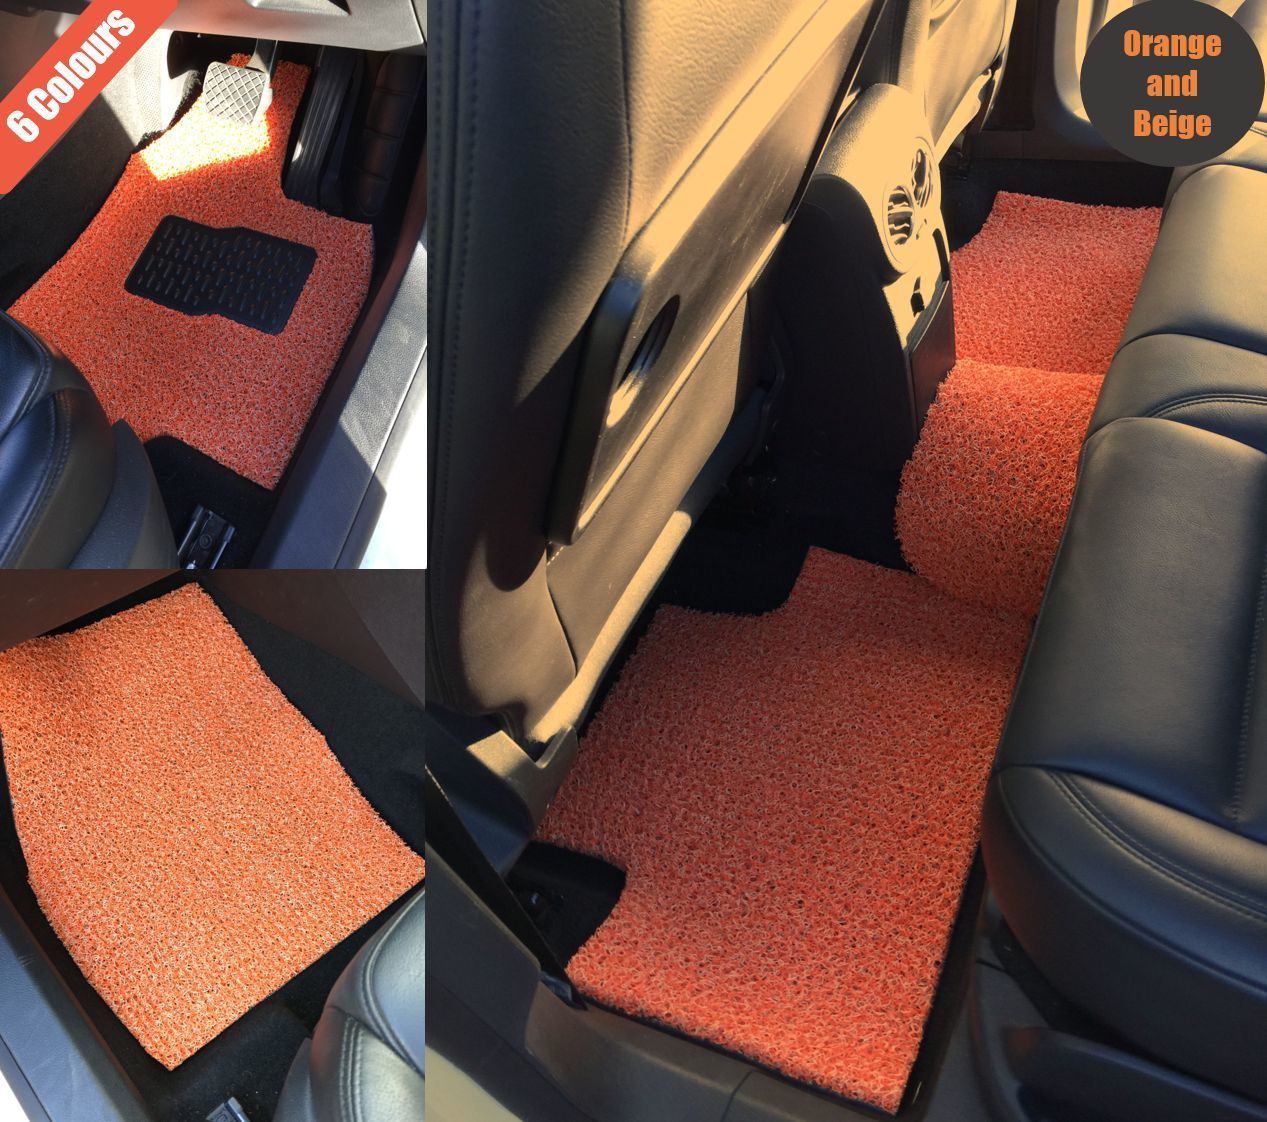 Goroo Custom Car Floor Mats - Orange and Beige